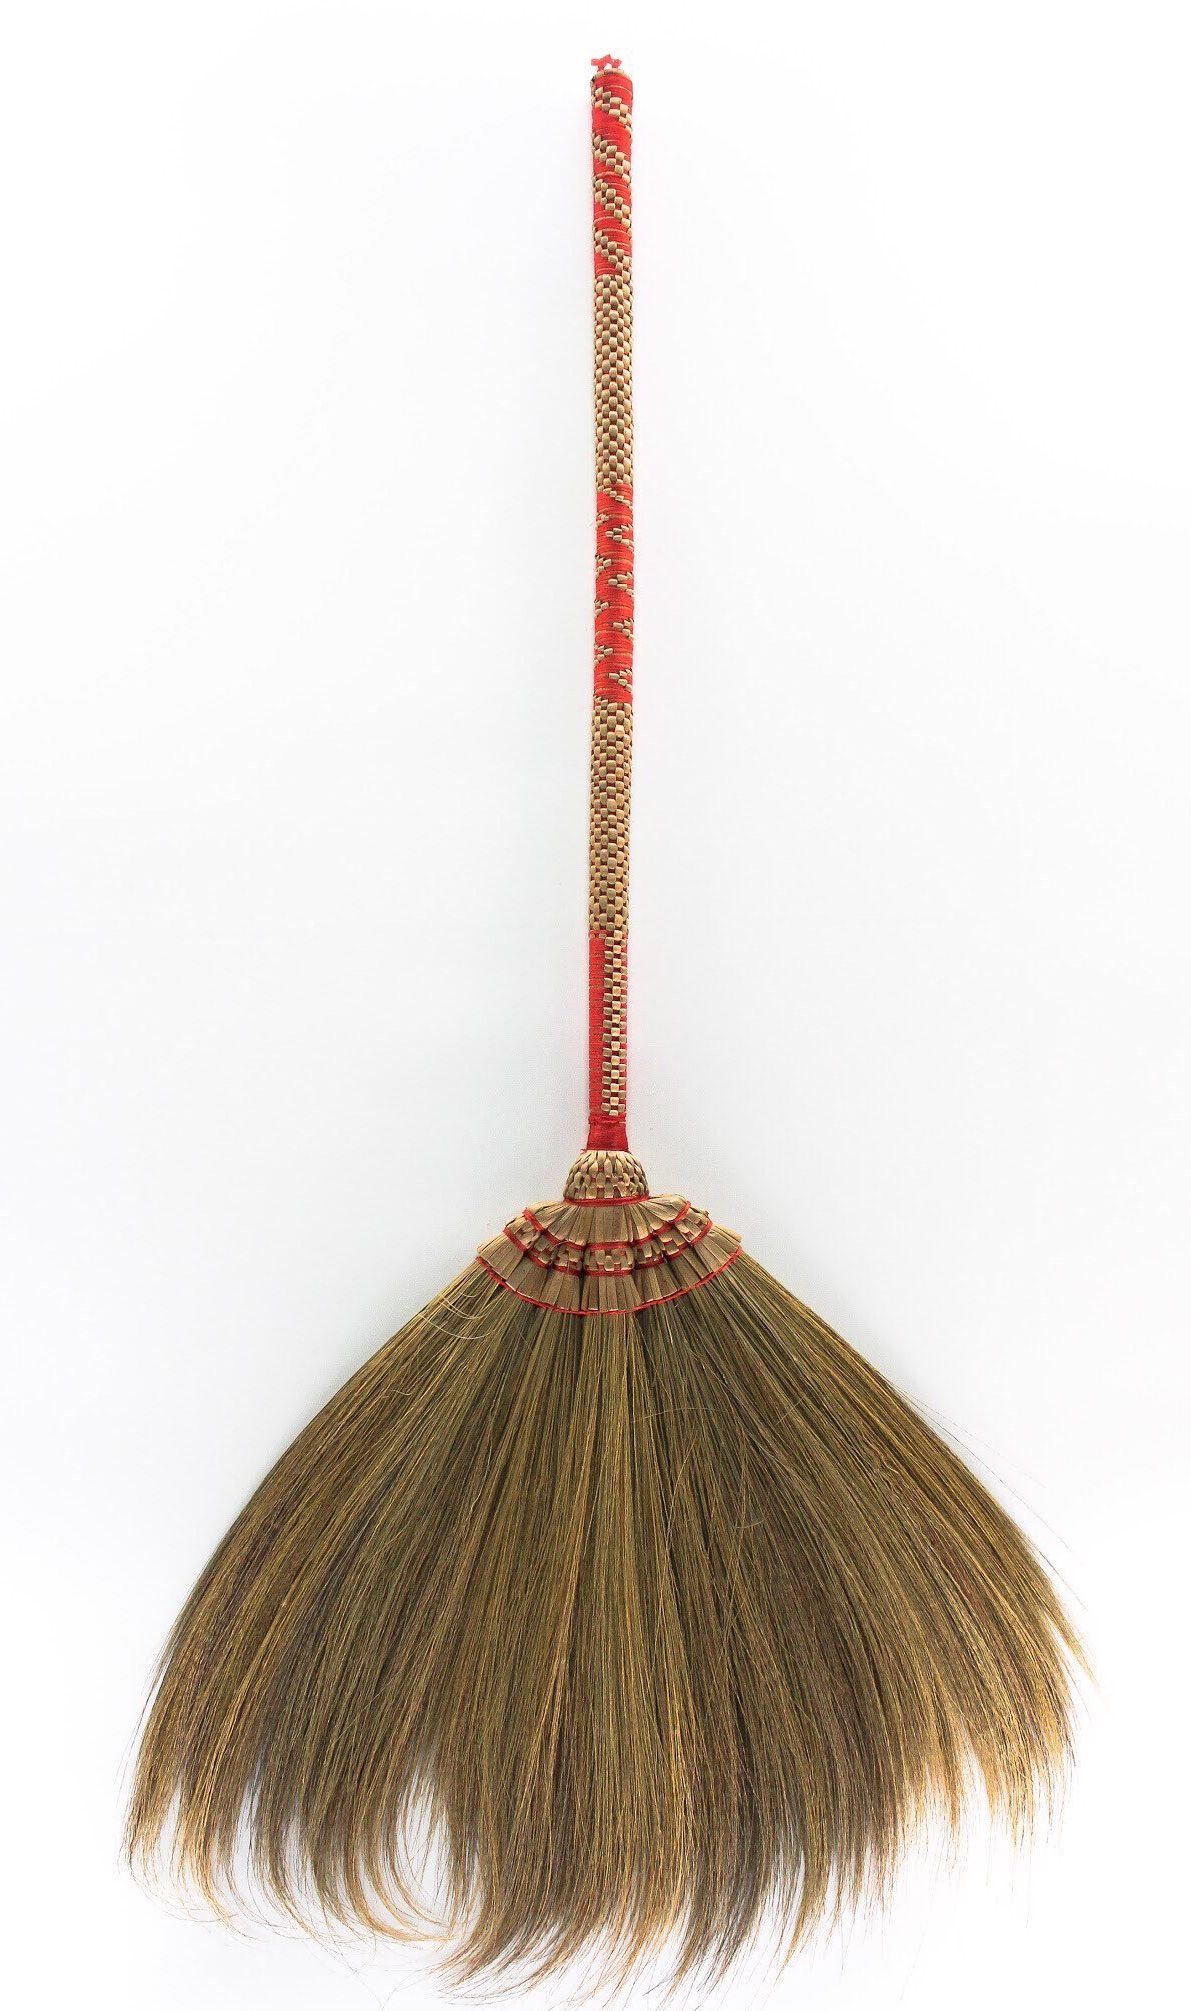 Another Great Thanks For Order To Statesville North Carolina To My Etsy Shop 38 Bamboo Grass Brooms Bamboo Embroidery Handle Co Broom Handmade Bamboo Grass